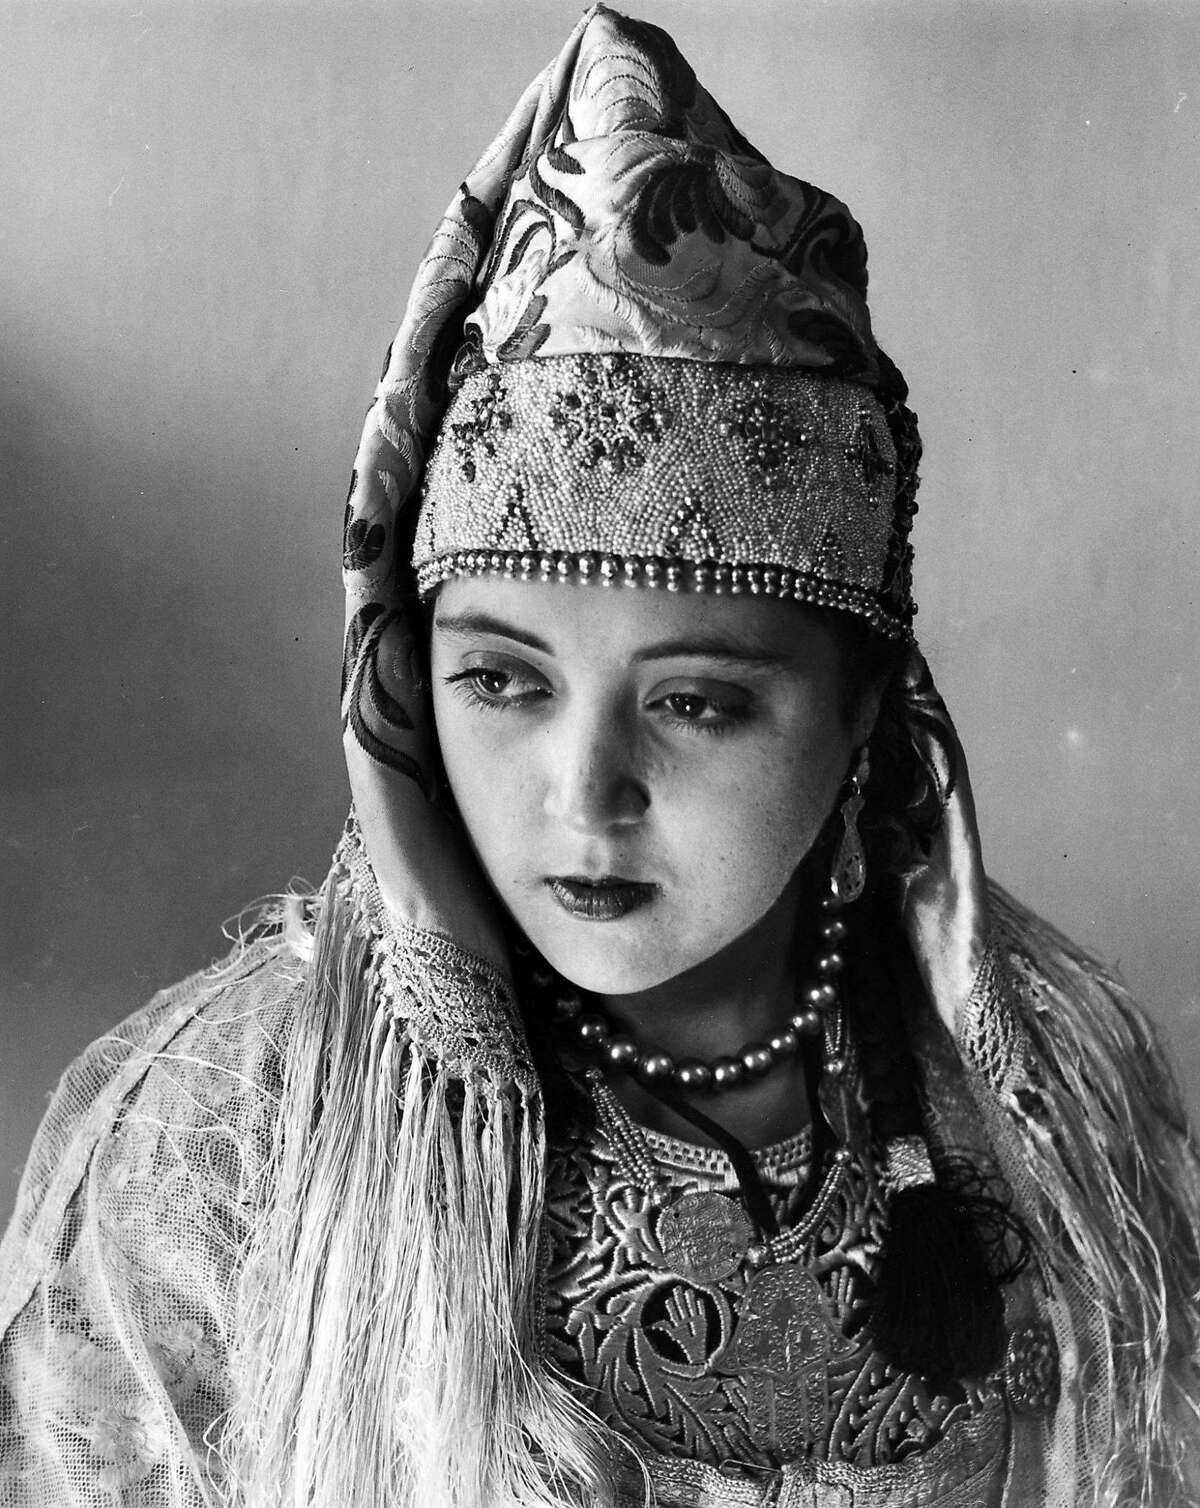 Woman wearing a pearled swalf. Fez, Morocco, 1930s. Photographic Archive of The Isidore and Anne Falk Information Center for the Jewish Art and Life, The Israel Museum, Jerusalem. Photo � J. Besancenot. Veiled Meanings: Fashioning Jewish Dress, from the Collection of The Israel Museum, Jerusalem on view August 30, 2018�January 6, 2019 at The Contemporary Jewish Museum, San Francisco.